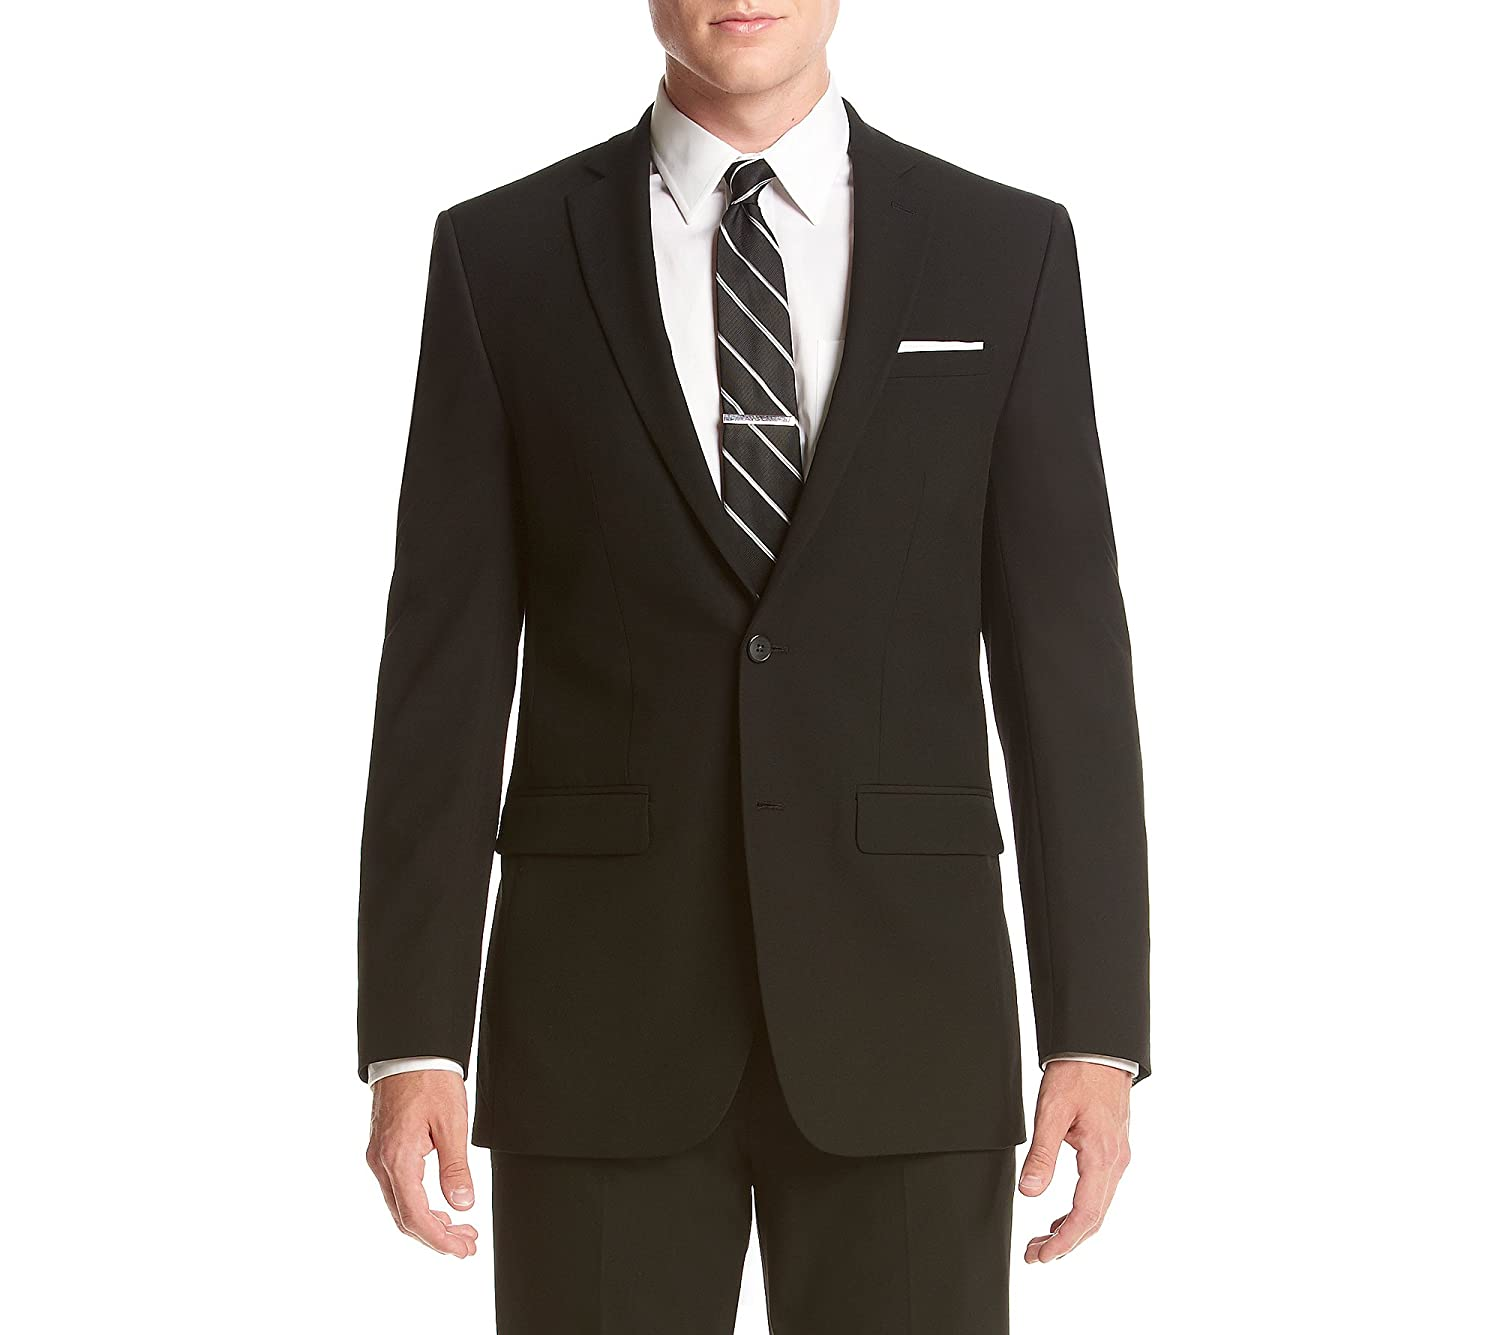 Van Heusen Mens Slim Fit Flex Stretch Suit Separate (Blazer and Pant) Van Heusen Tailored TOFN1VZX